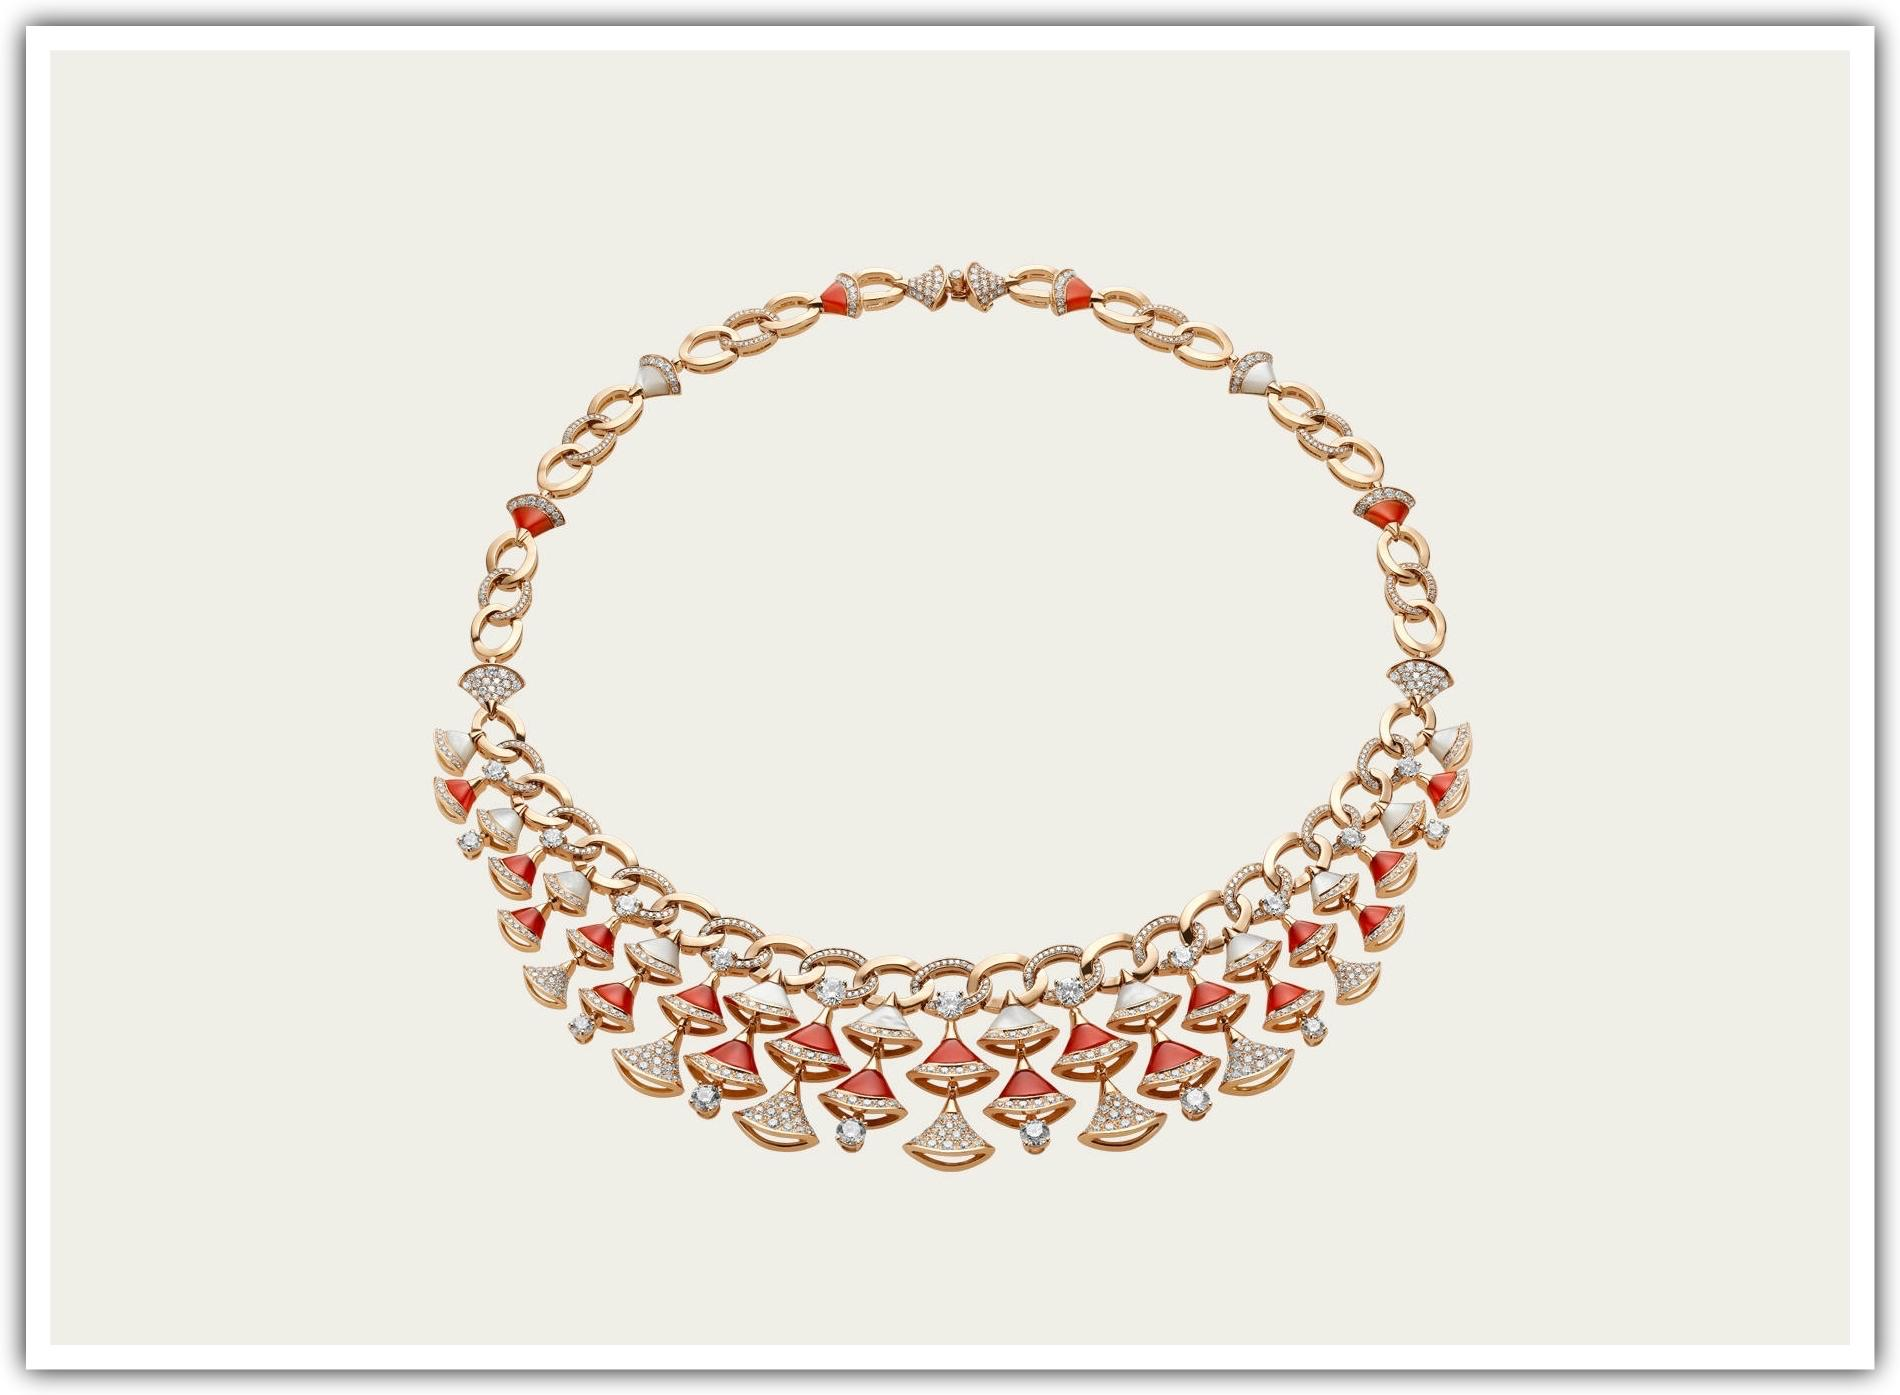 Bulgari Diva's Dream Necklace